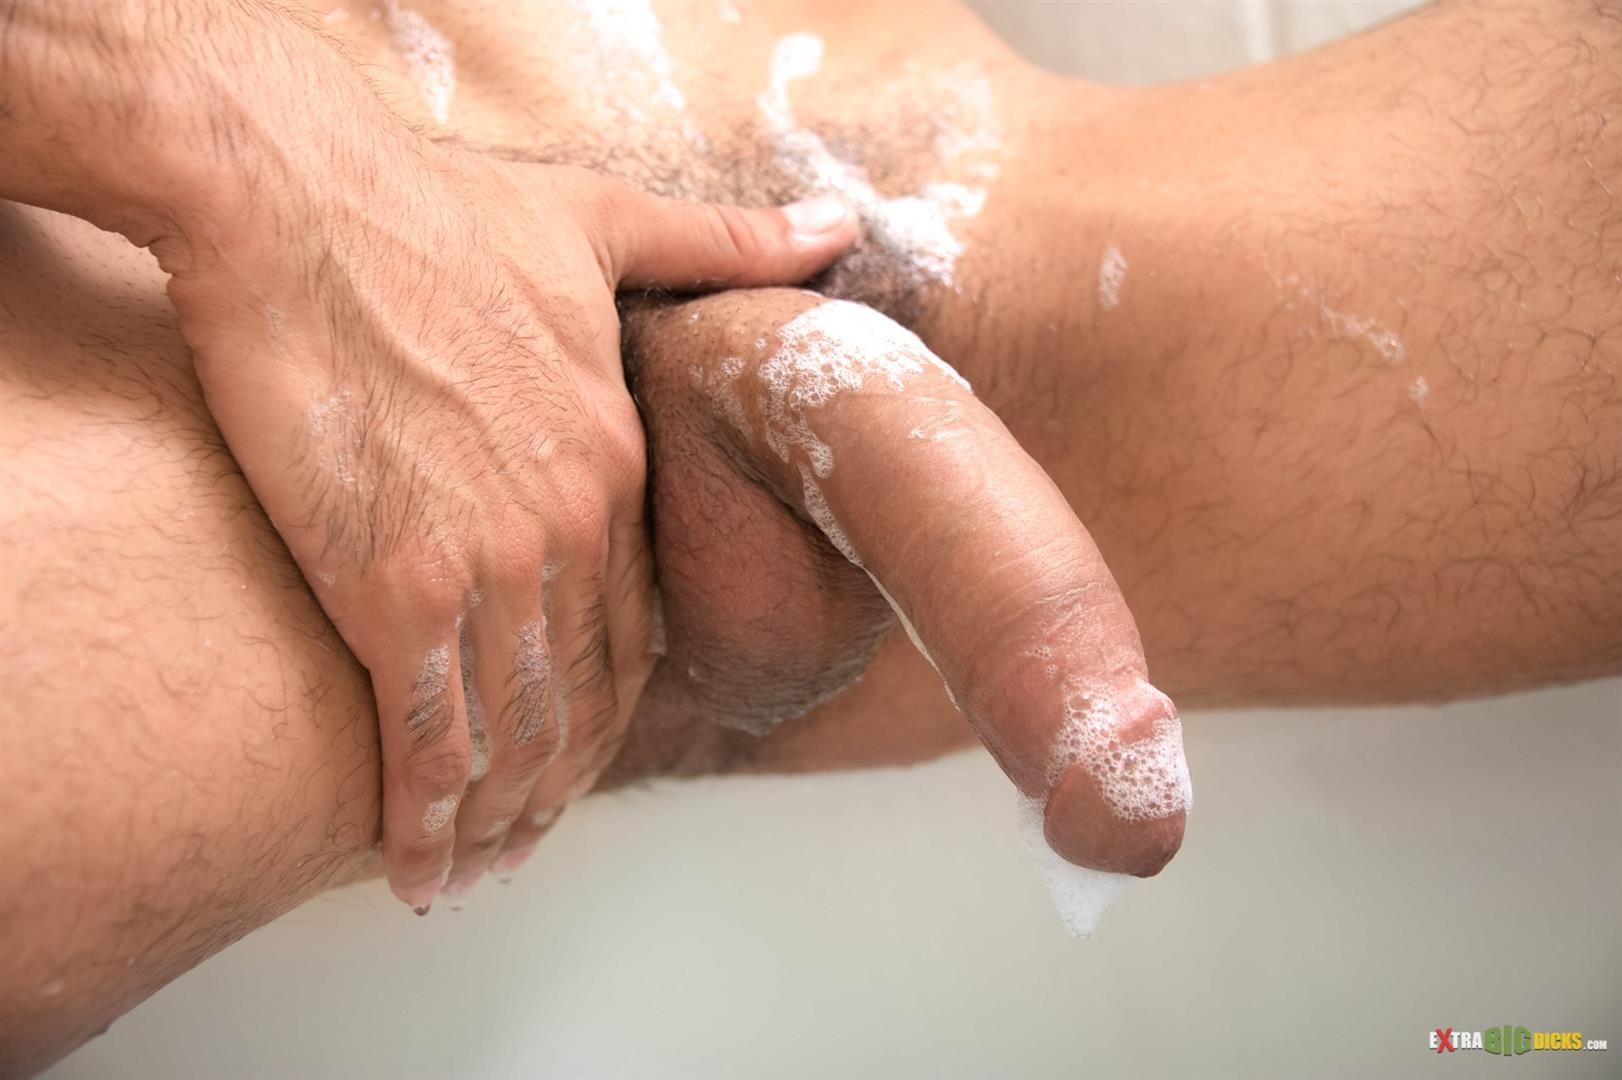 Extra-Big-Dicks-Bobby-Hart-Hunk-Jerking-off-Huge-Cock-in-the-Bathtub-Amateur-Gay-Porn-06 Amateur Hunk Taking A Bubble Bath Jerking His Huge Cock